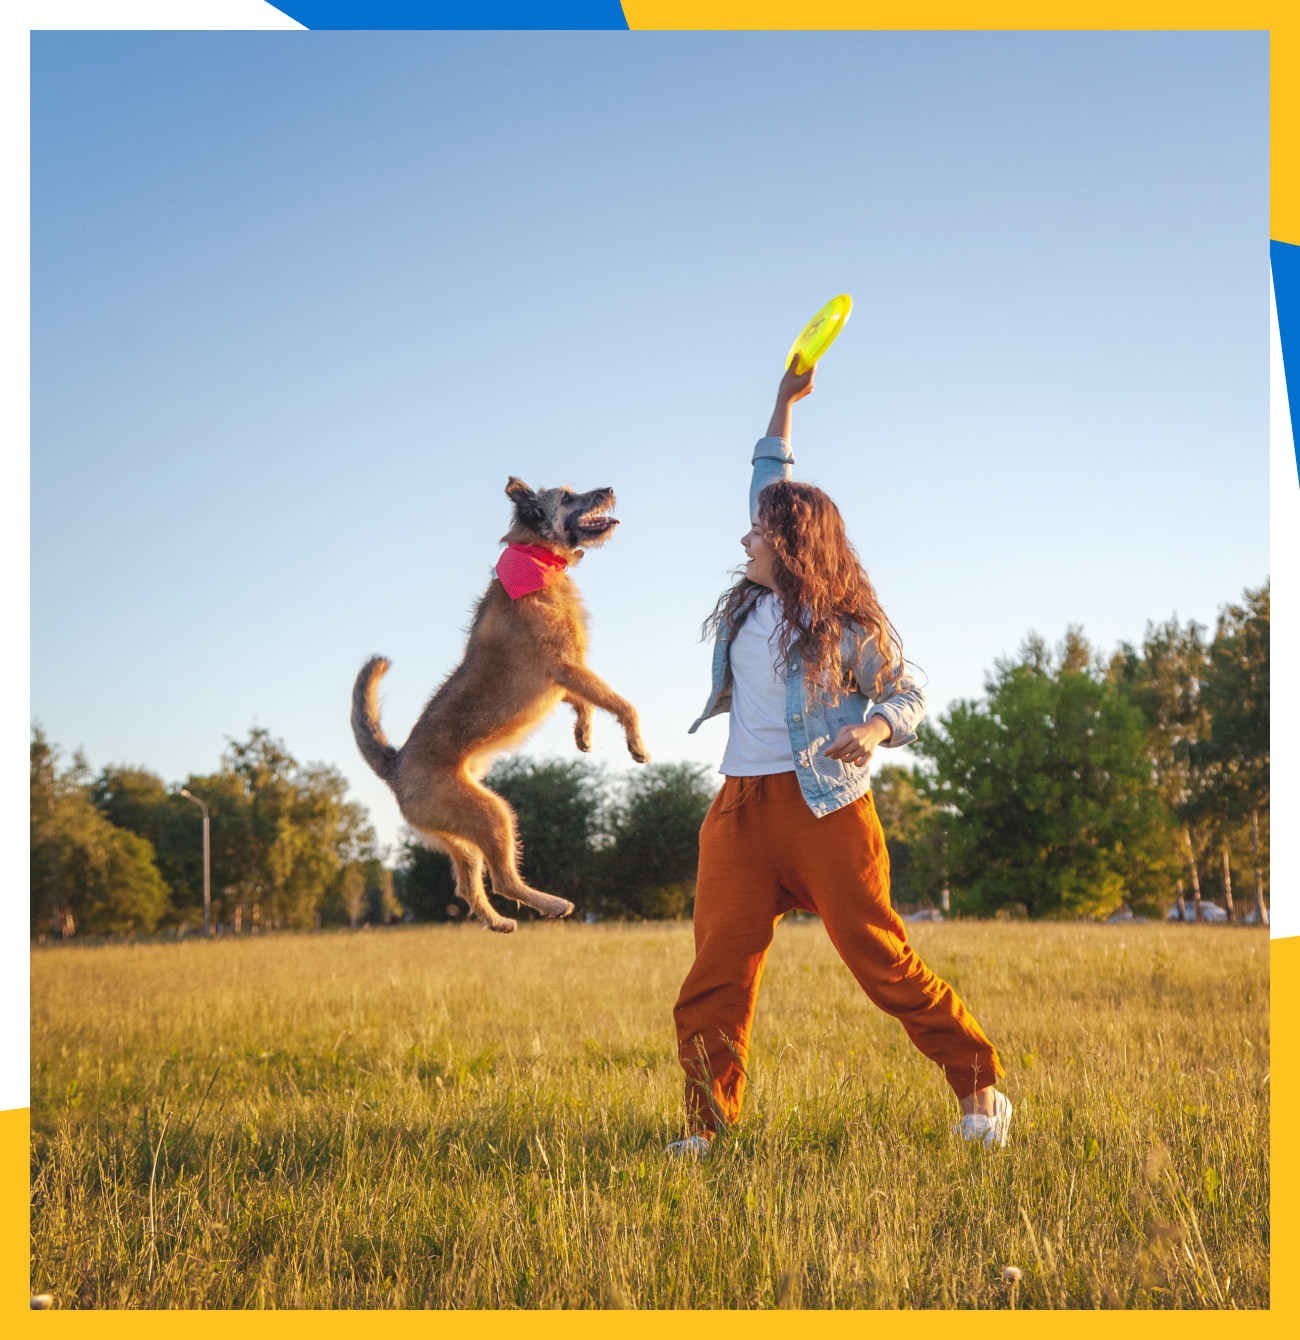 Woman holding frisbee in the air  while her dog leaps for it.